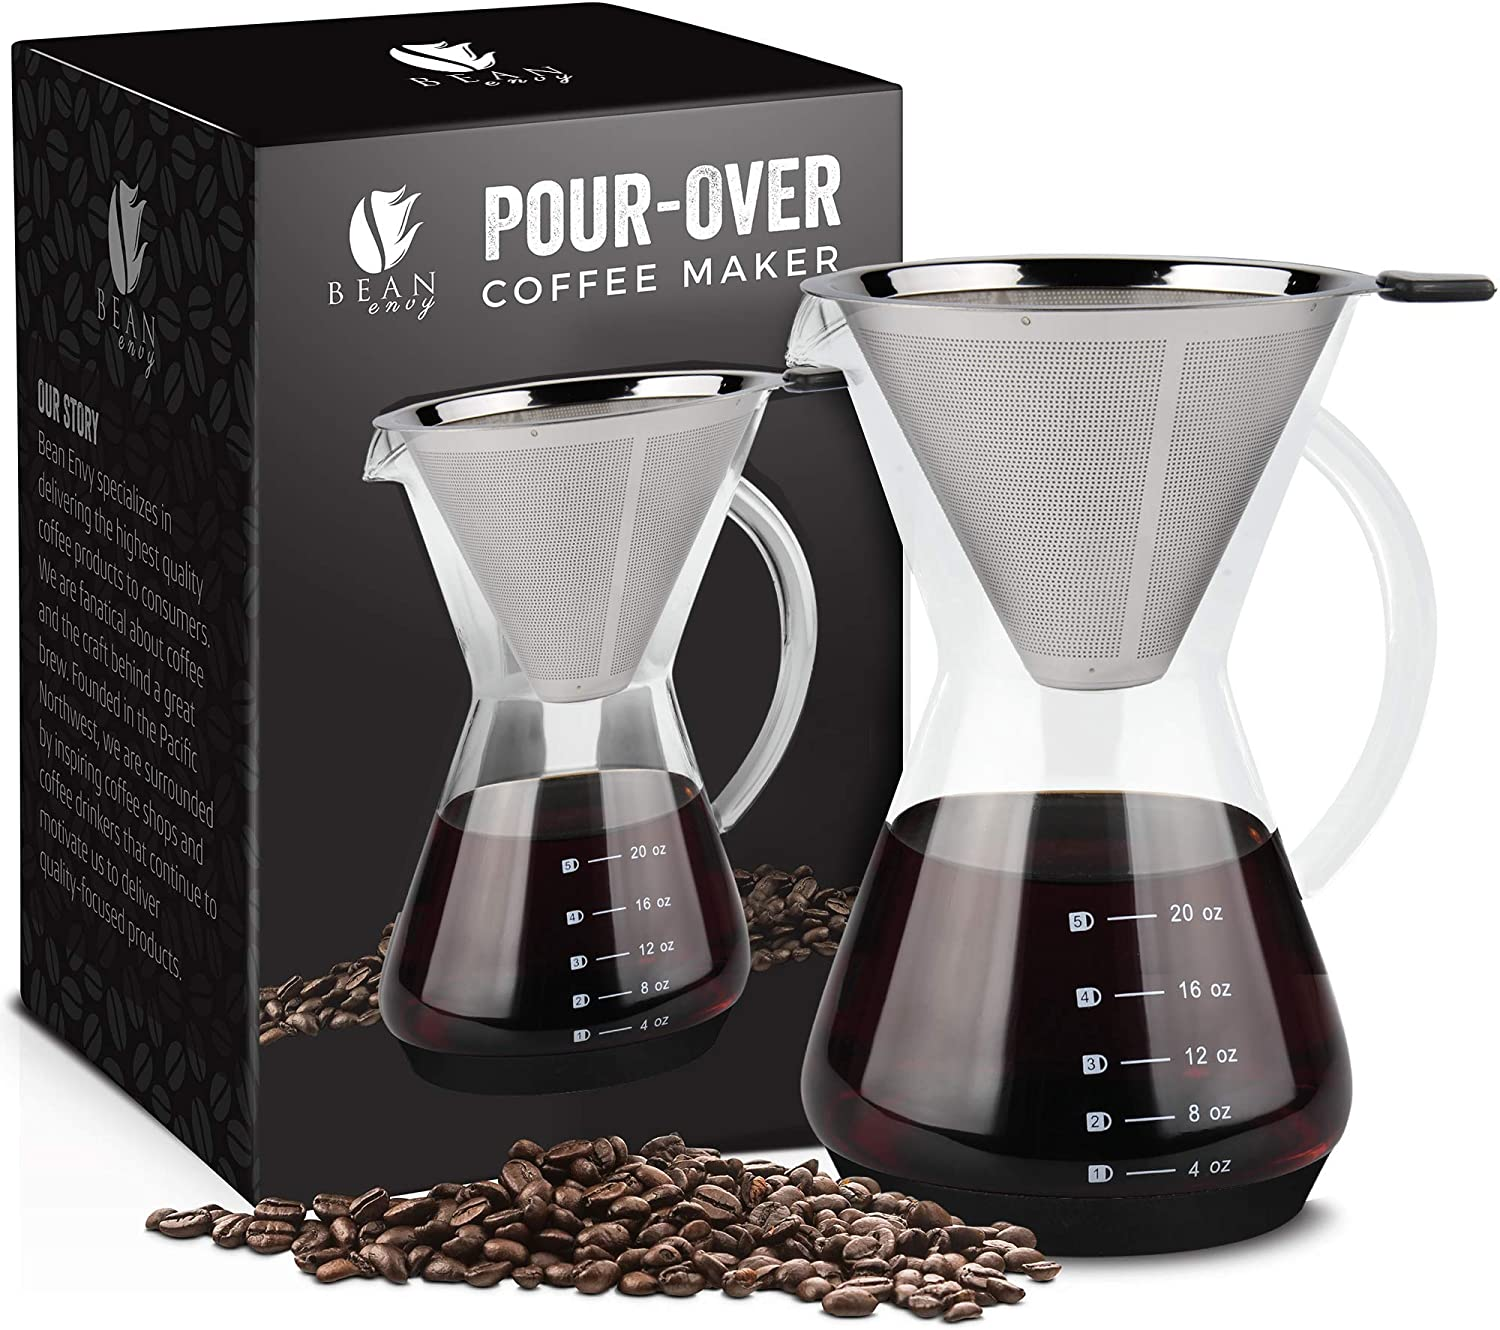 Bean Envy Pour Over Coffee Maker – 20 oz Borosilicate Glass Carafe – Rust Resistant Stainless Steel Paperless Filter Dripper – Includes Custom Silicone Sleeve